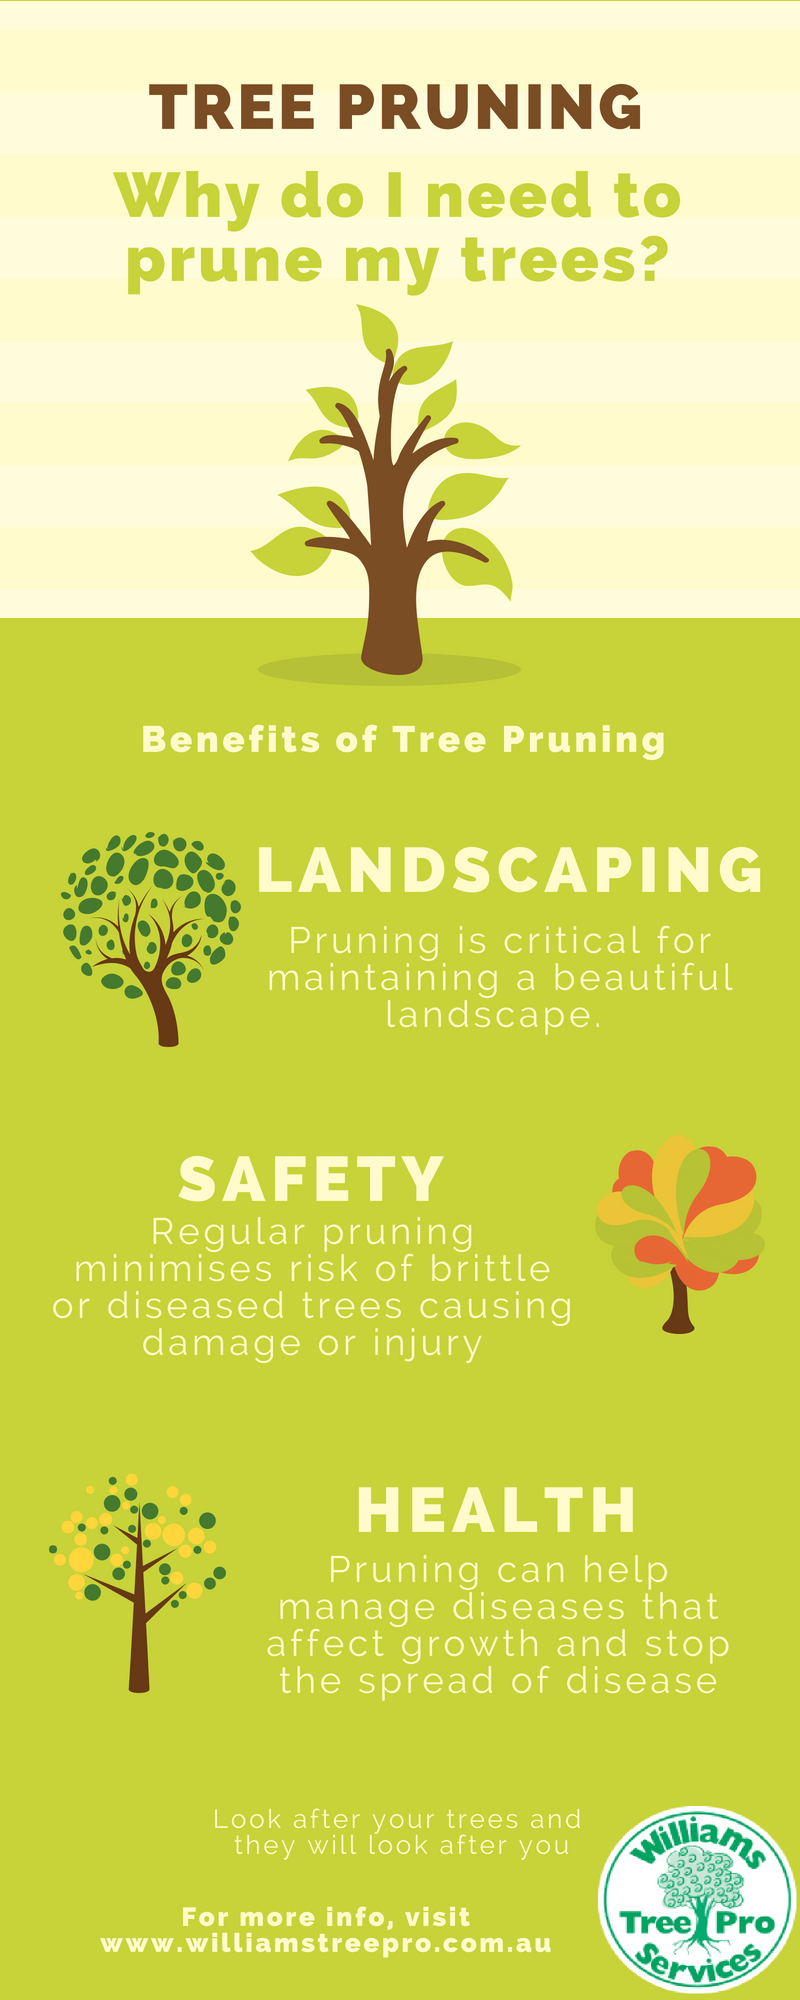 Tree Pruning Services in Perth - Williams Tree Pro